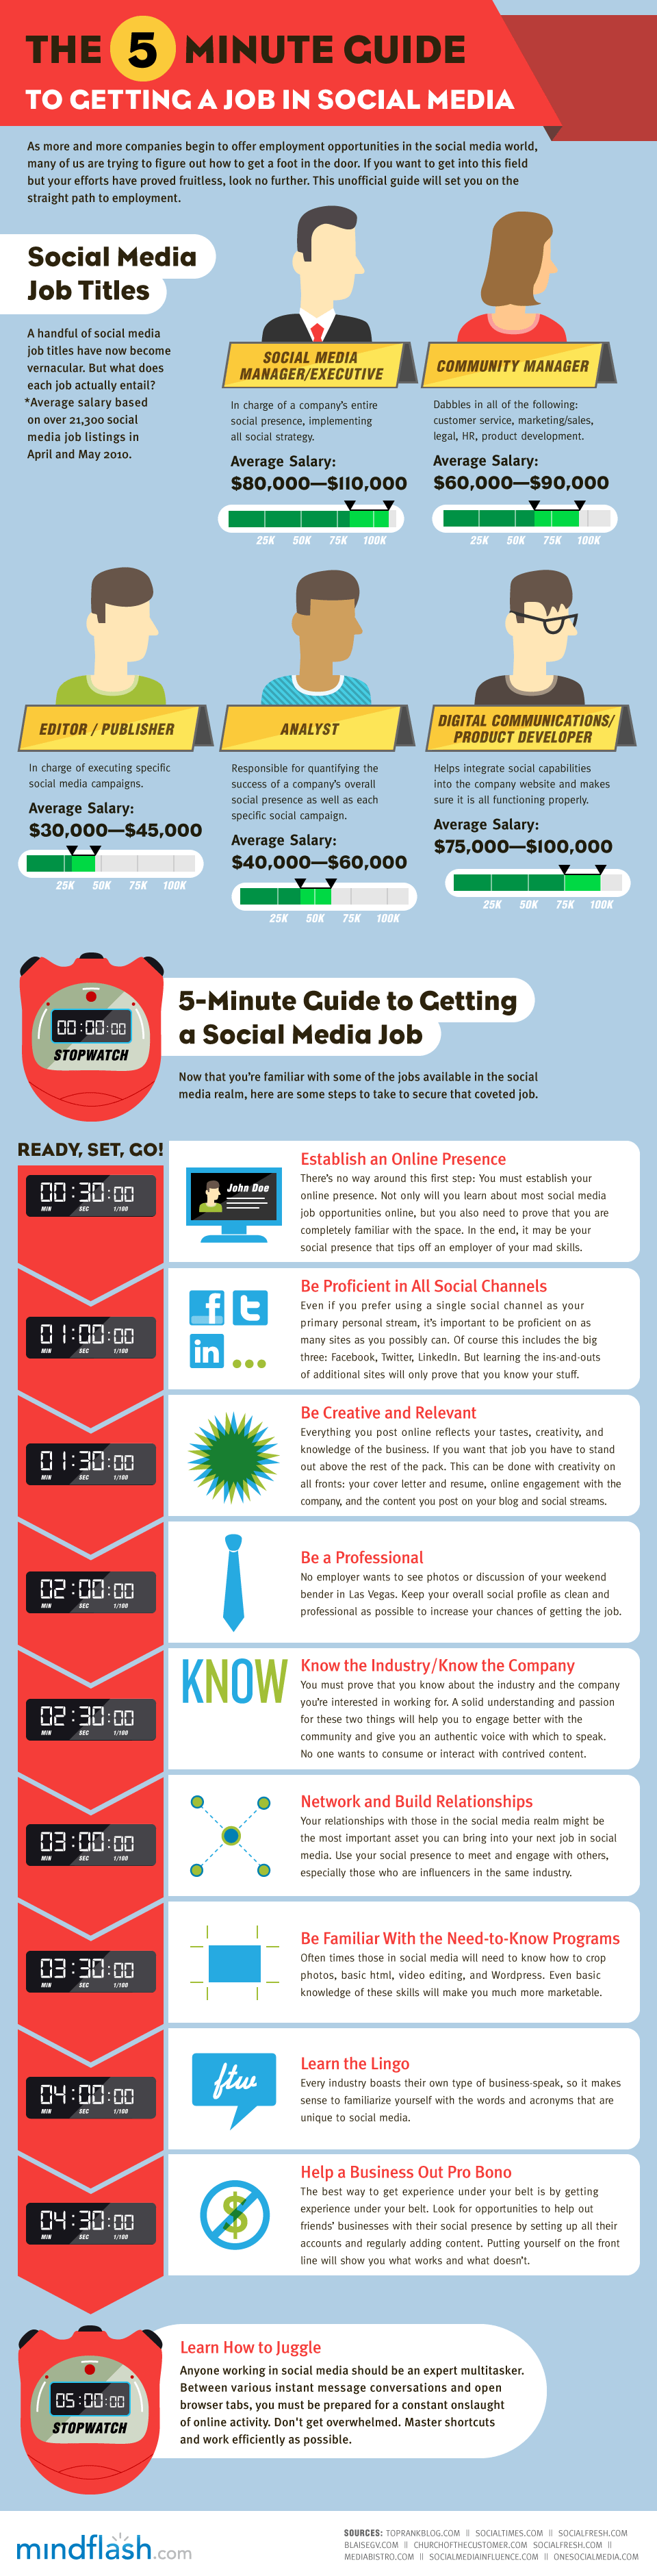 the quick guide to getting a social media job infographic. Black Bedroom Furniture Sets. Home Design Ideas